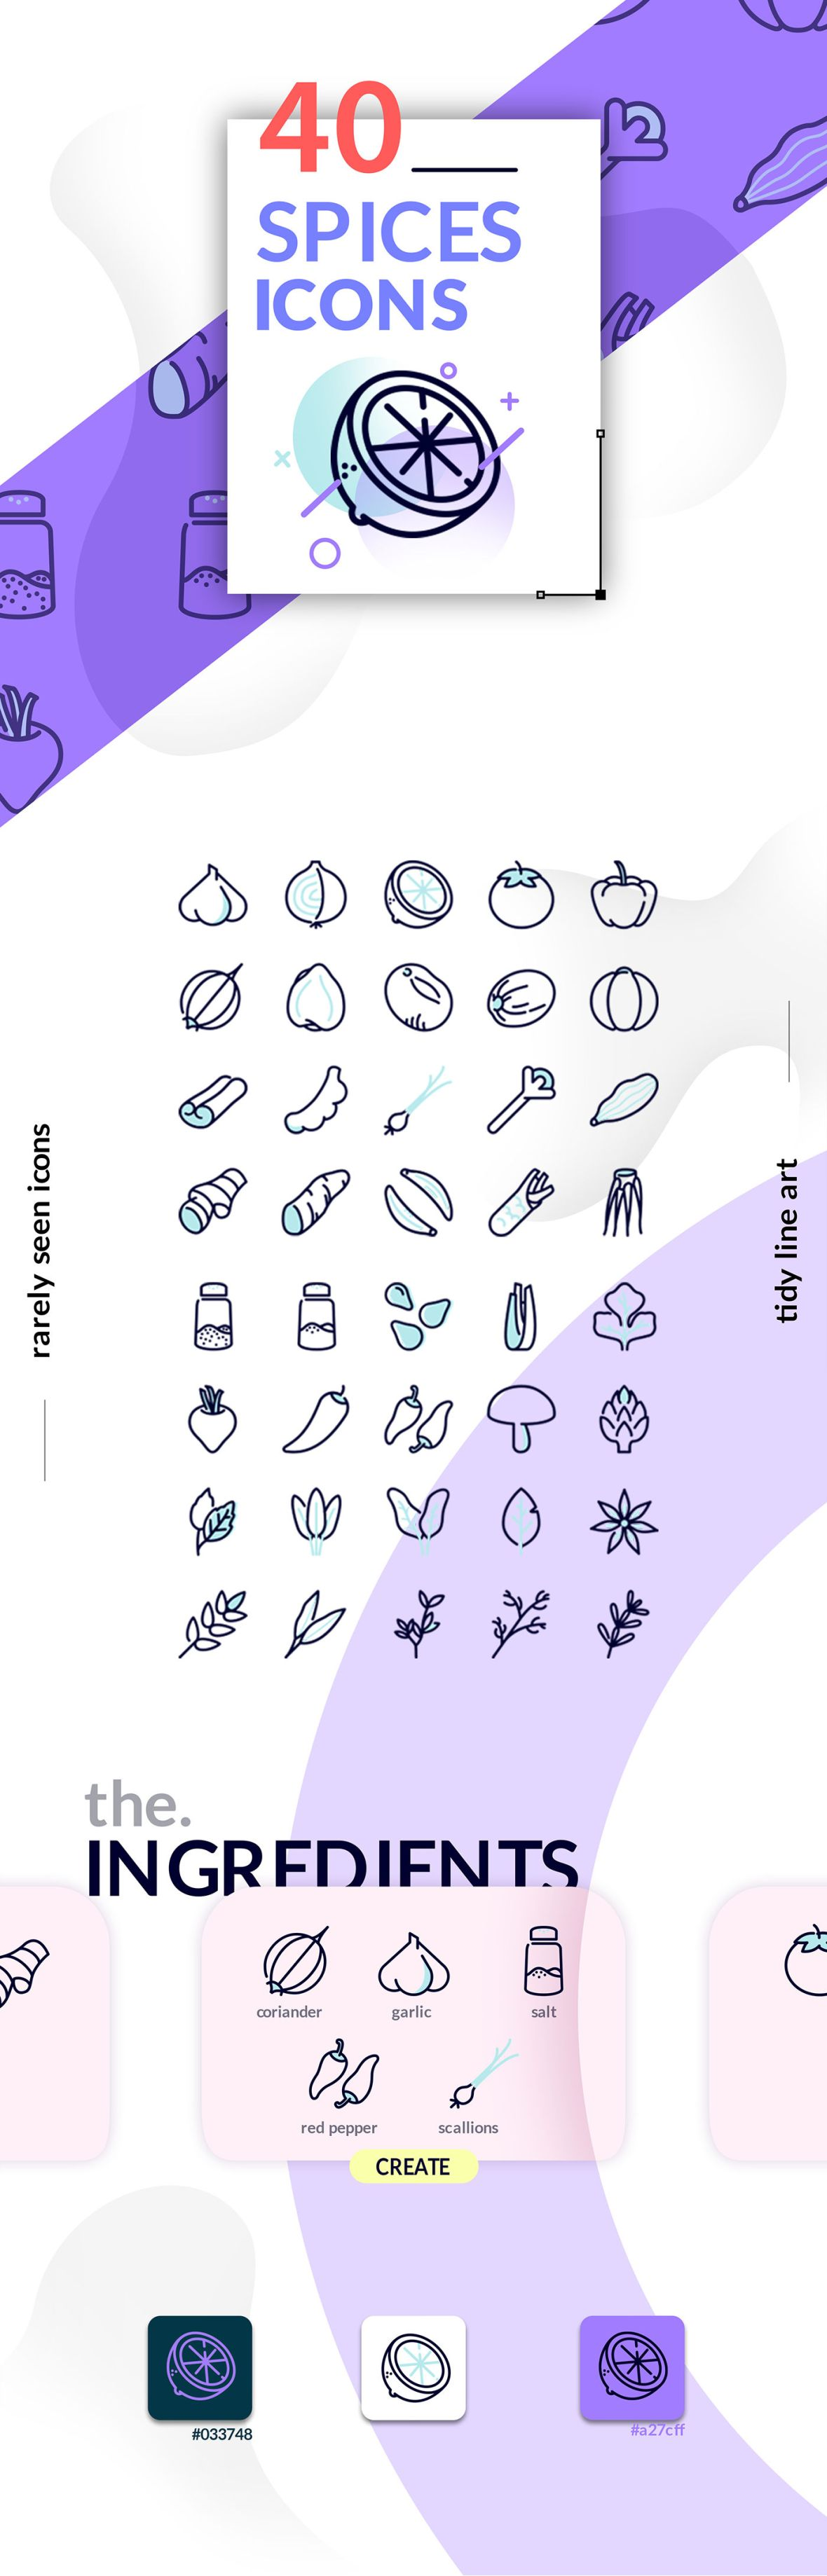 Free 40 Spices Icons